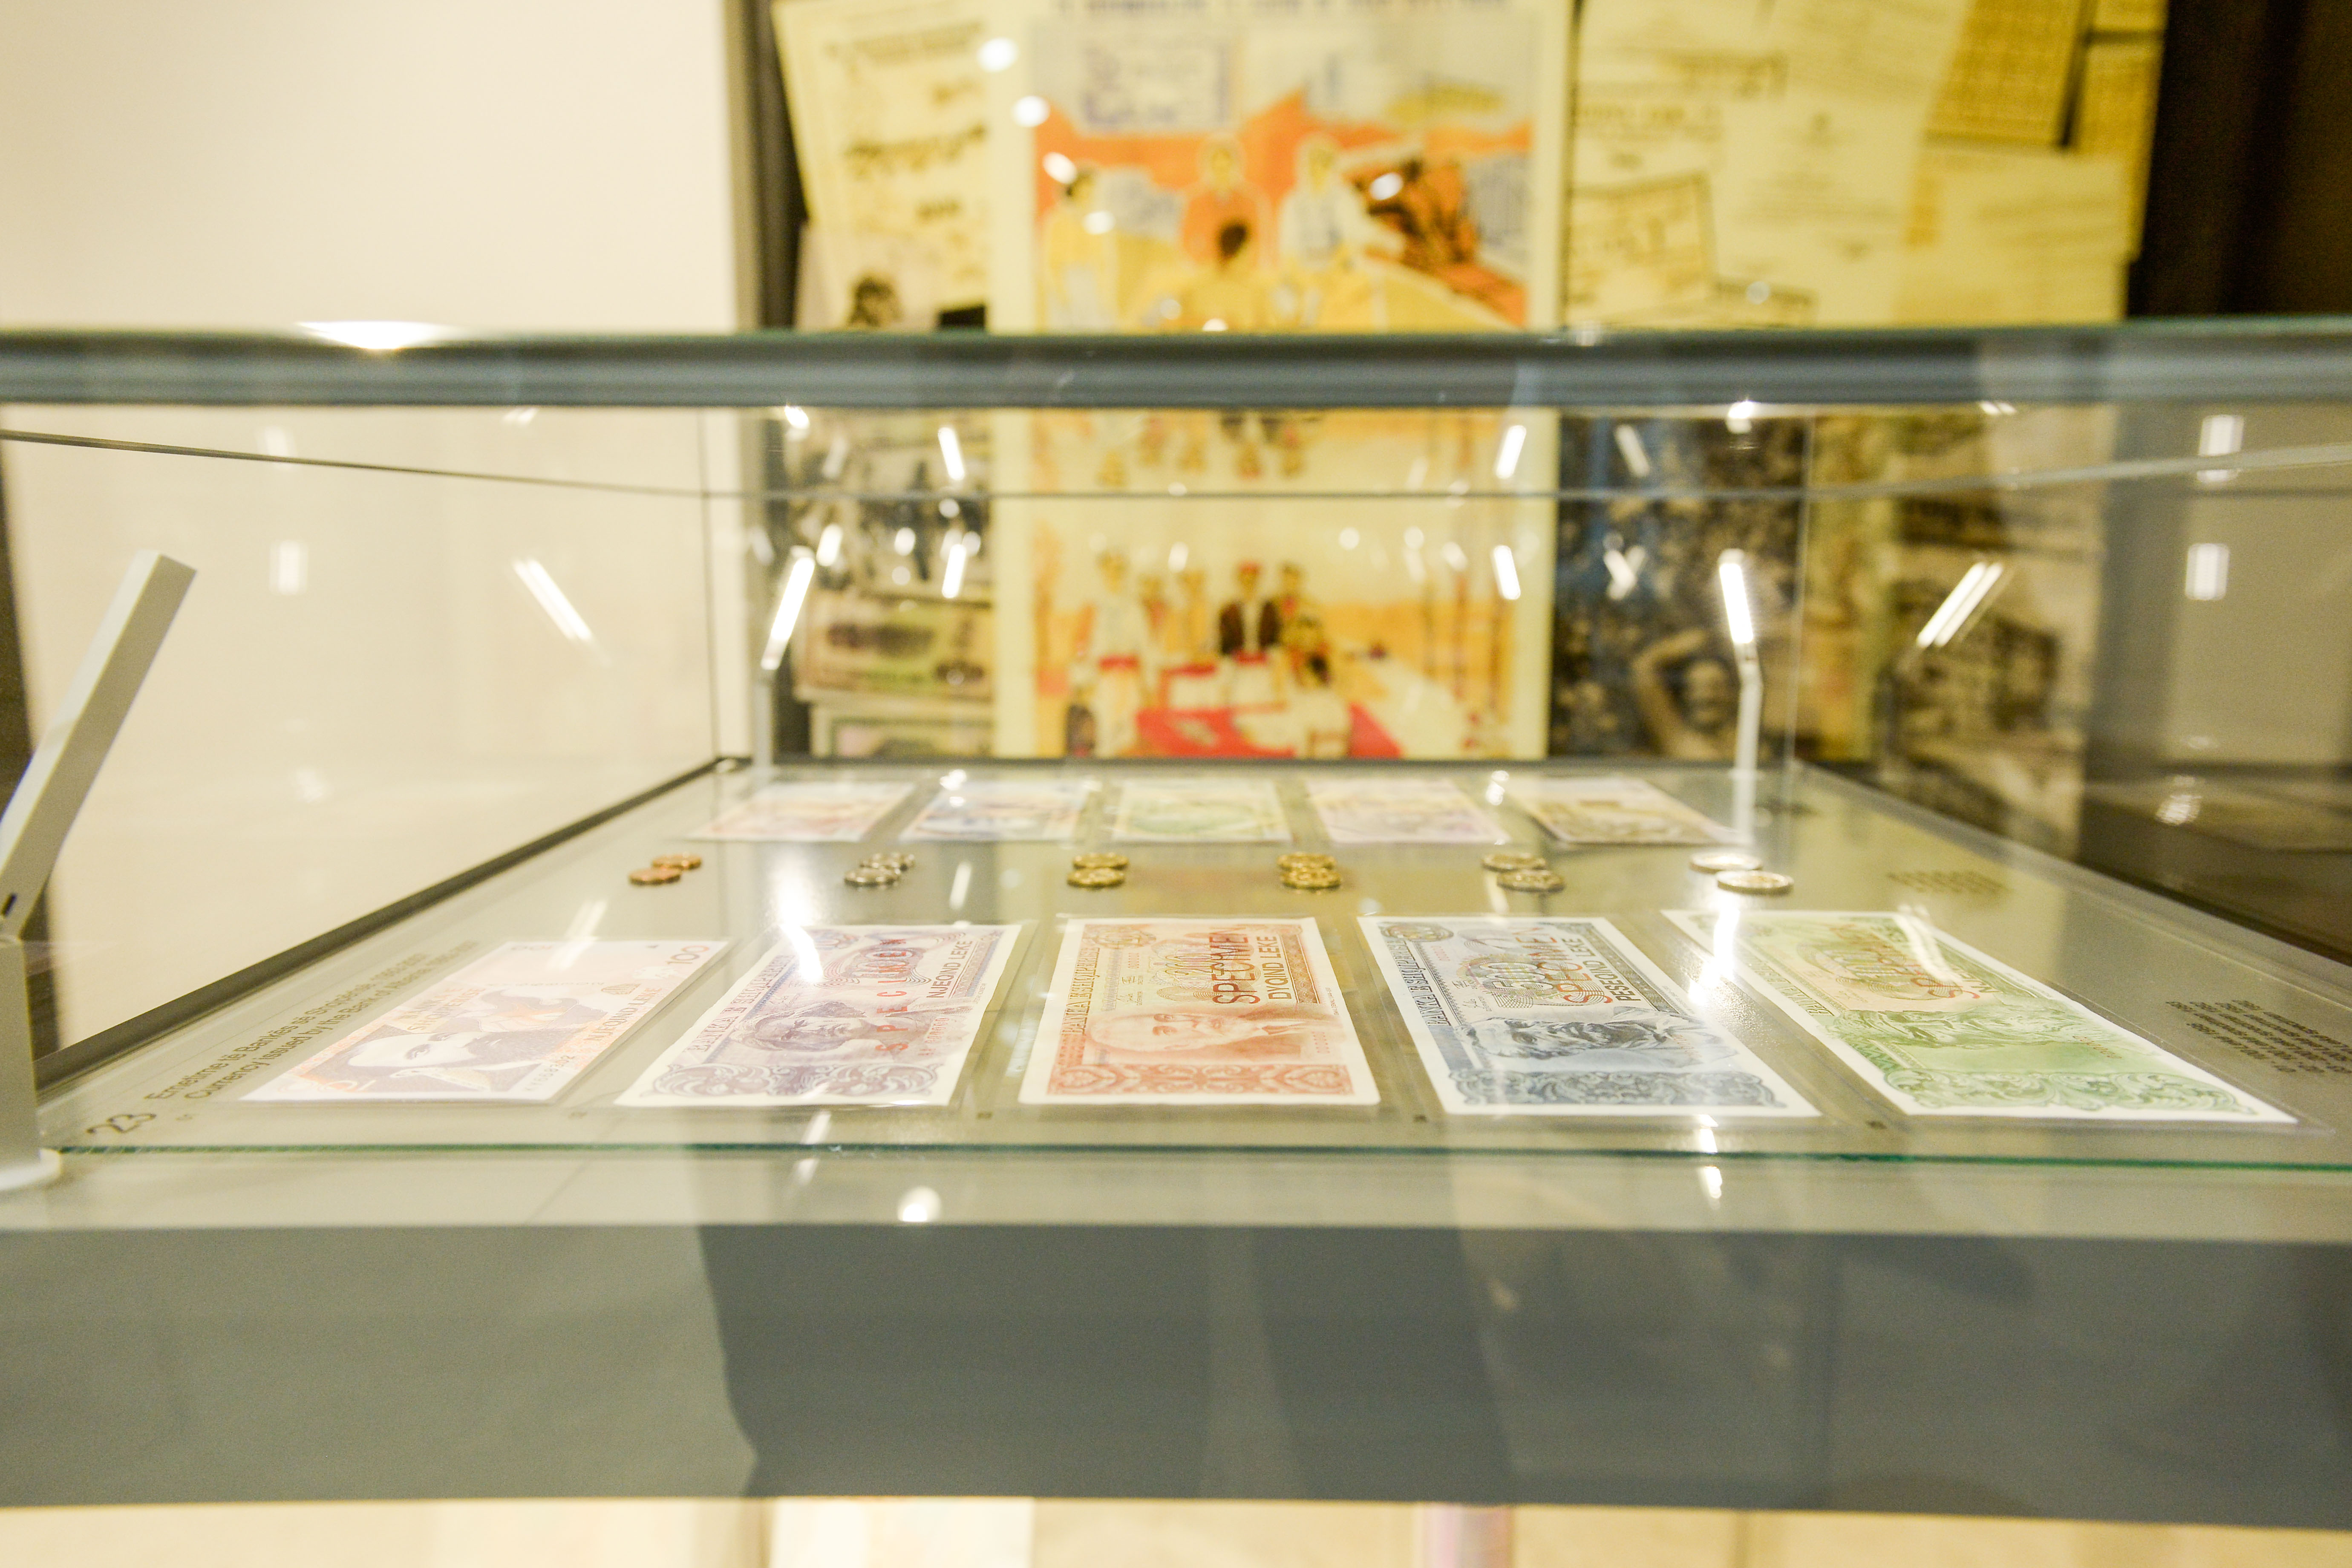 Banknotes' collection